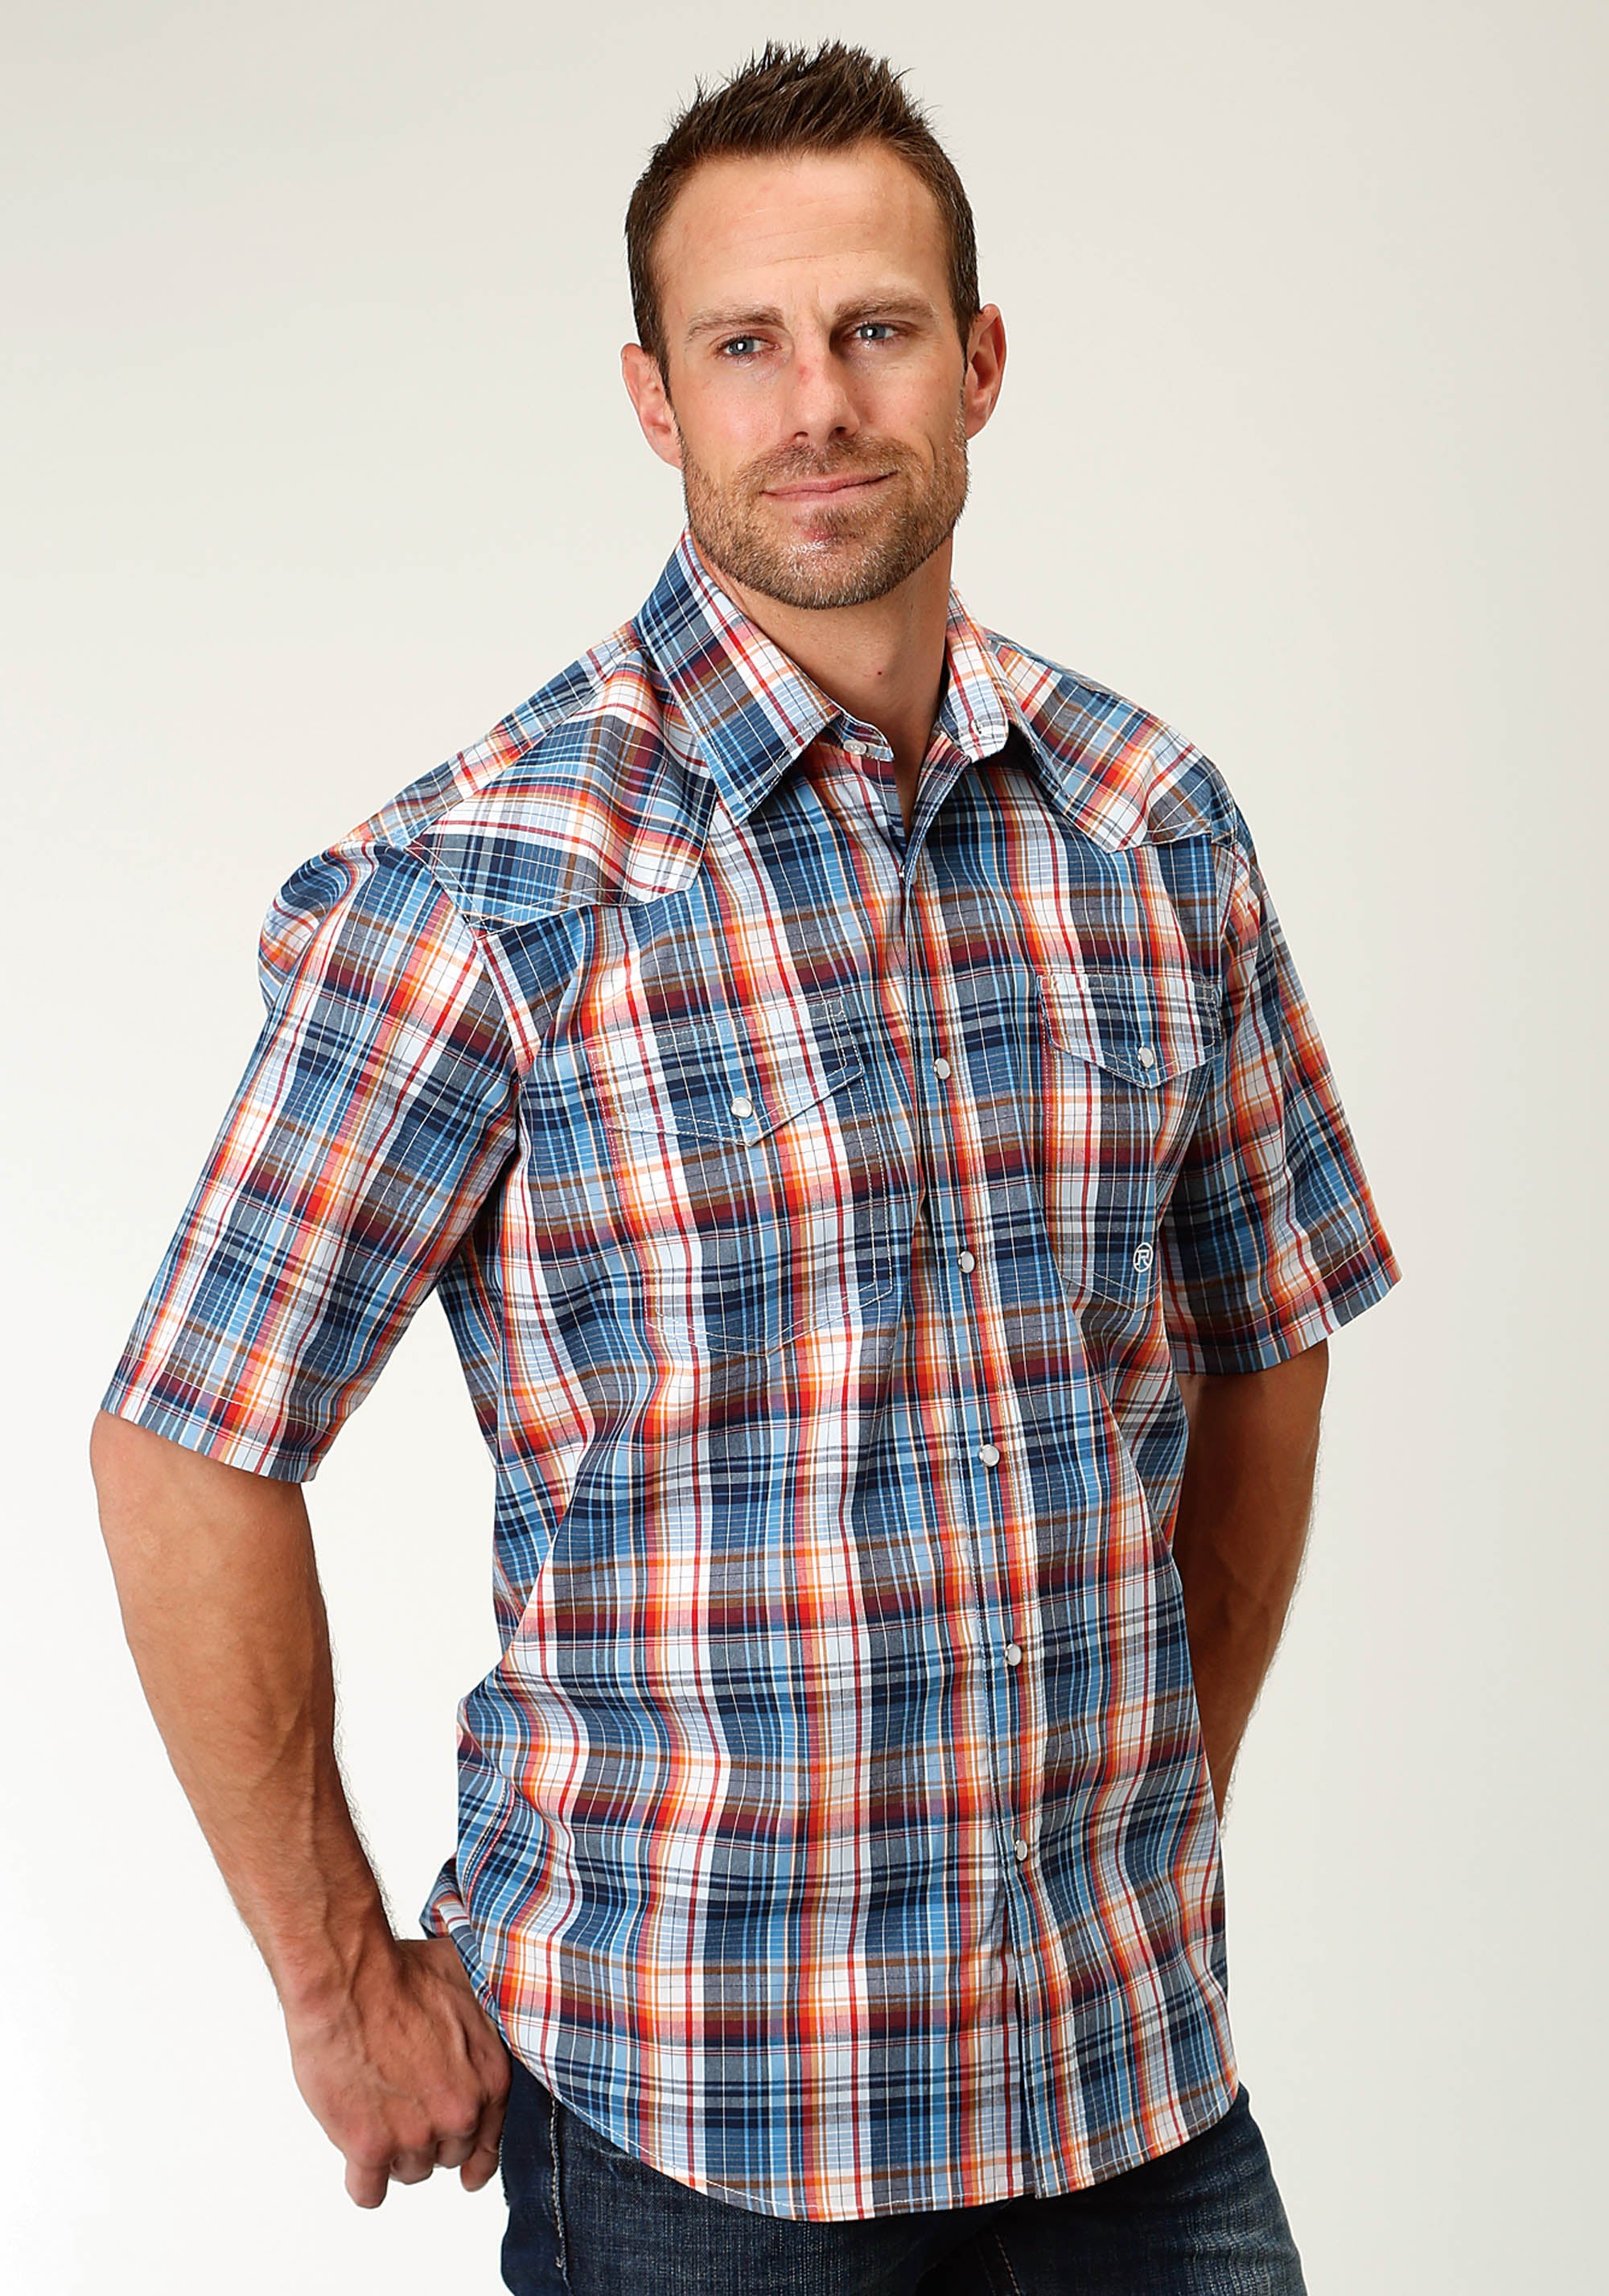 ROPER MENS BLUE 2453 DUNGEREE PLAID MEN'S AMARILLO COLLECTION- INDIGO BLUES SHORT SLEEVE